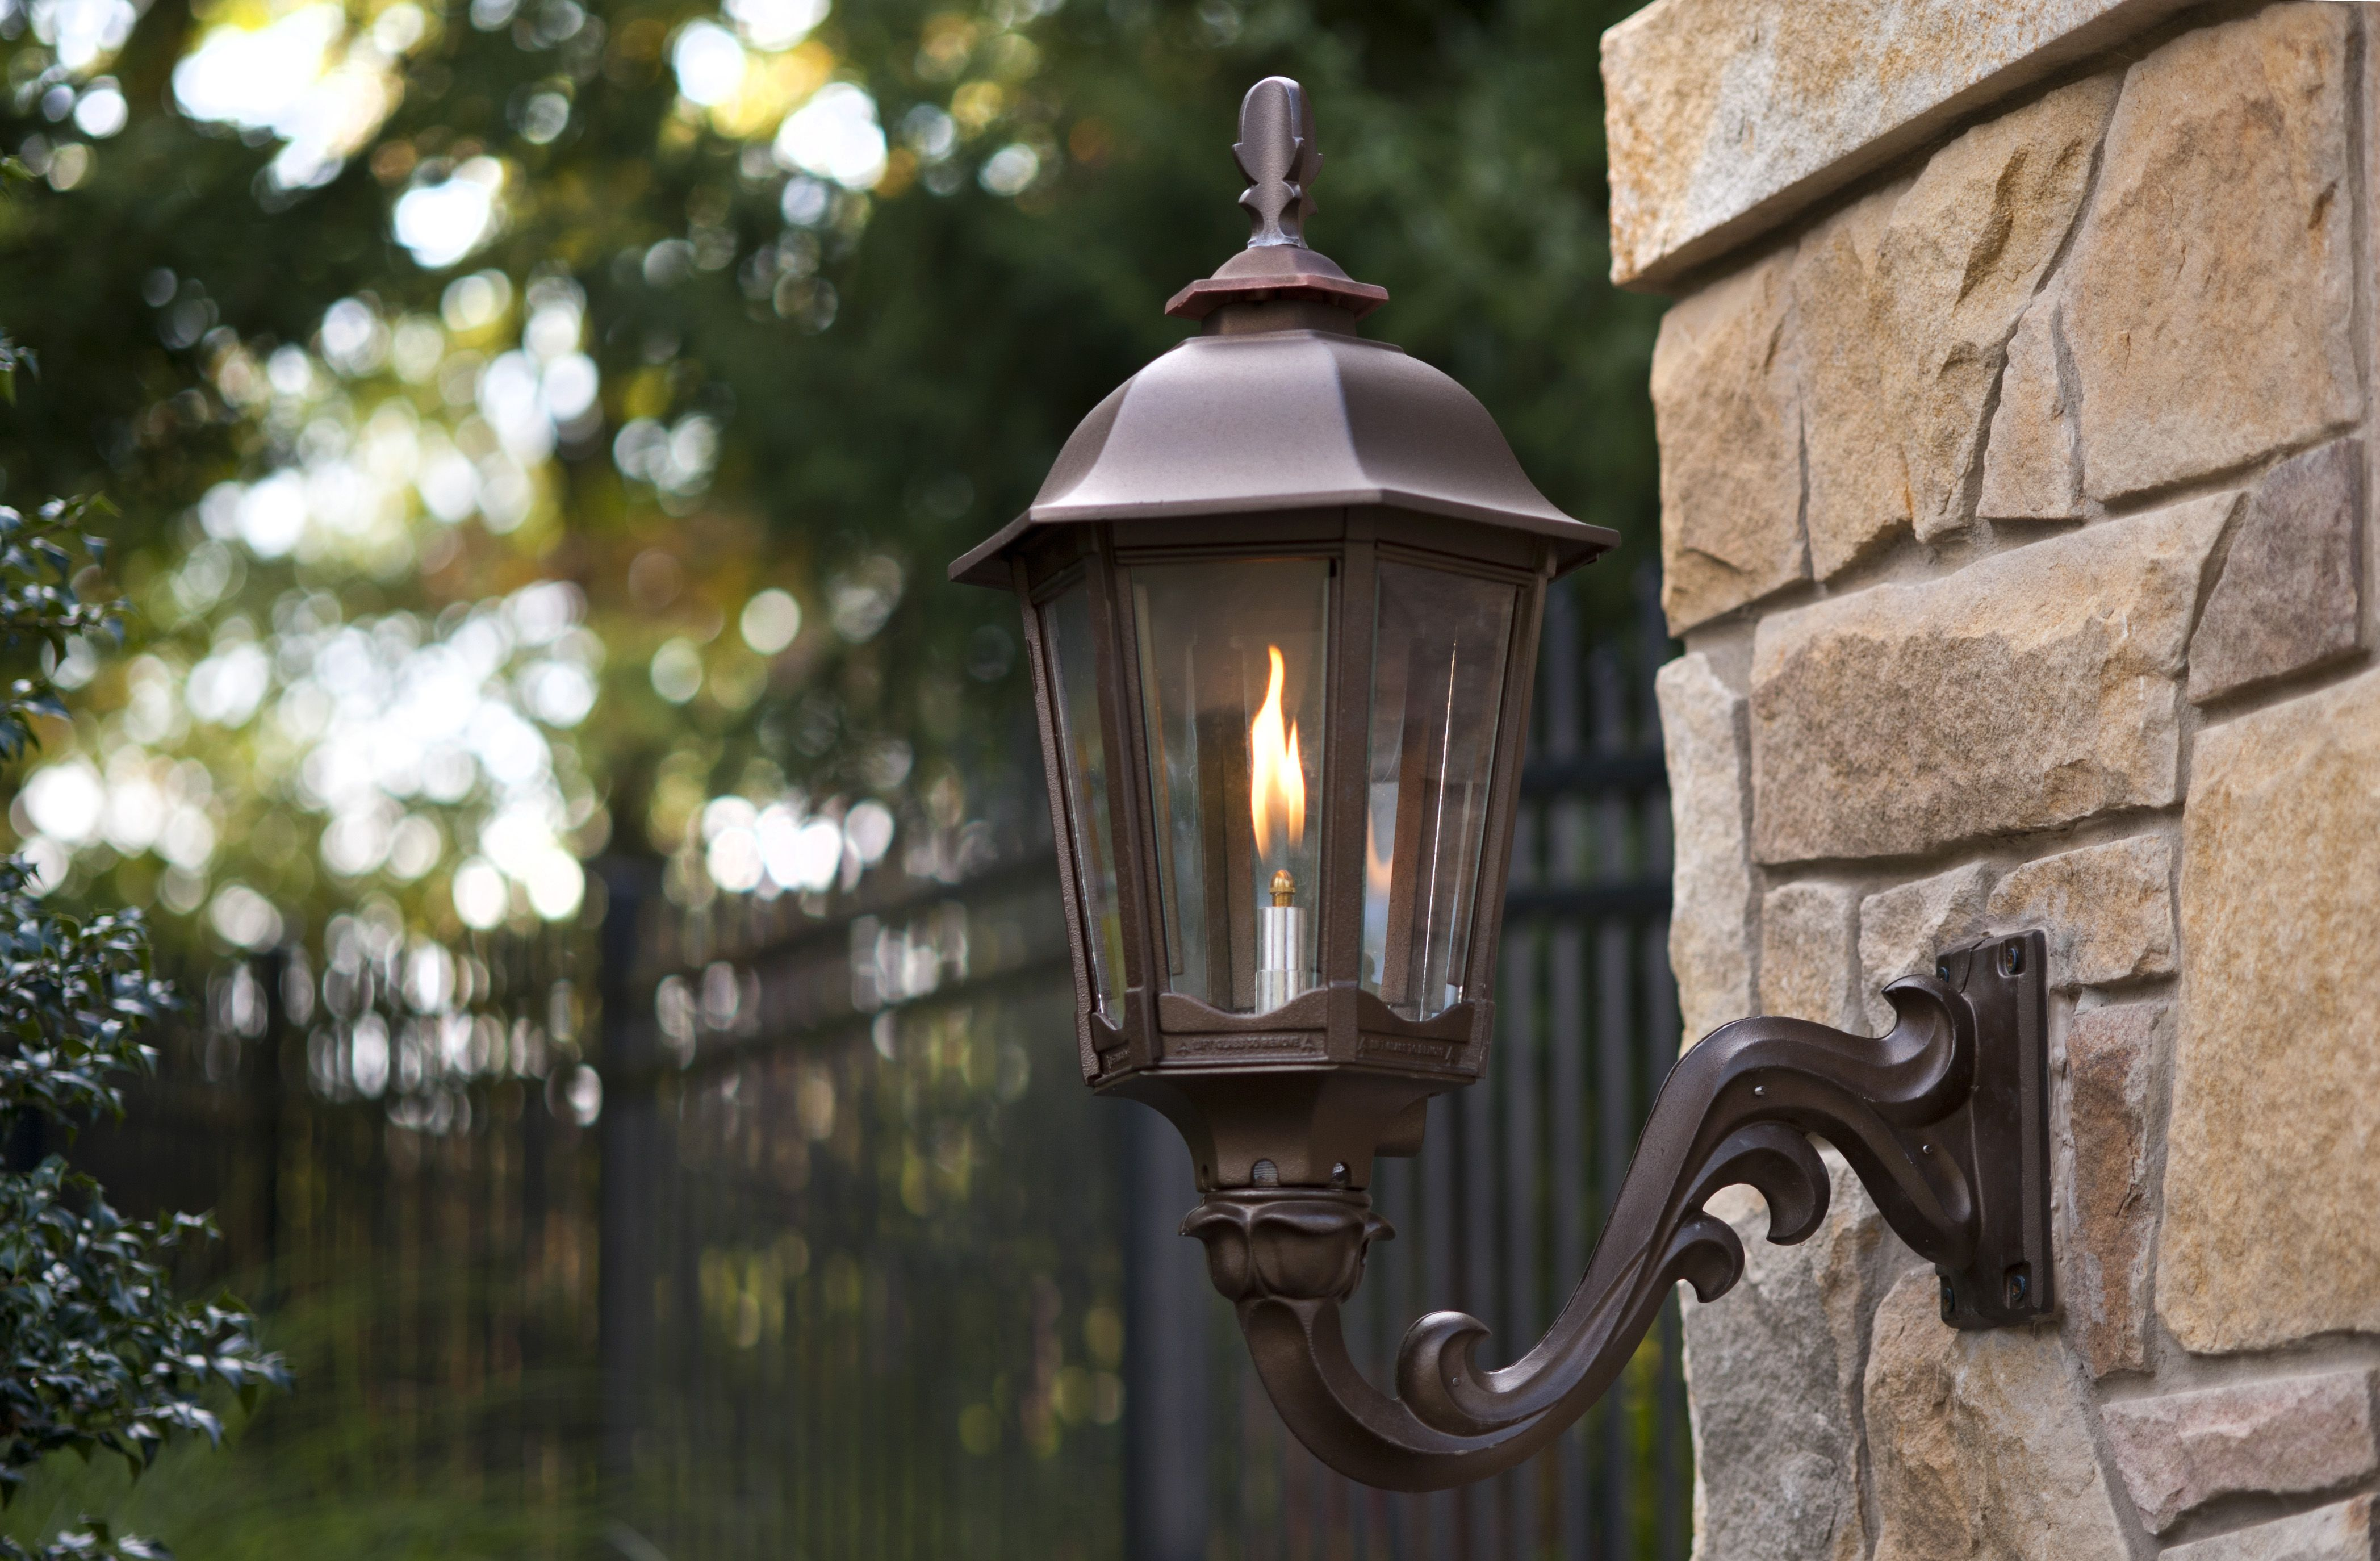 Outdoor Gas Lamps Lighting By American Gas Lamp Works Gas Lanterns Porch Lighting Outdoor Lamp Posts